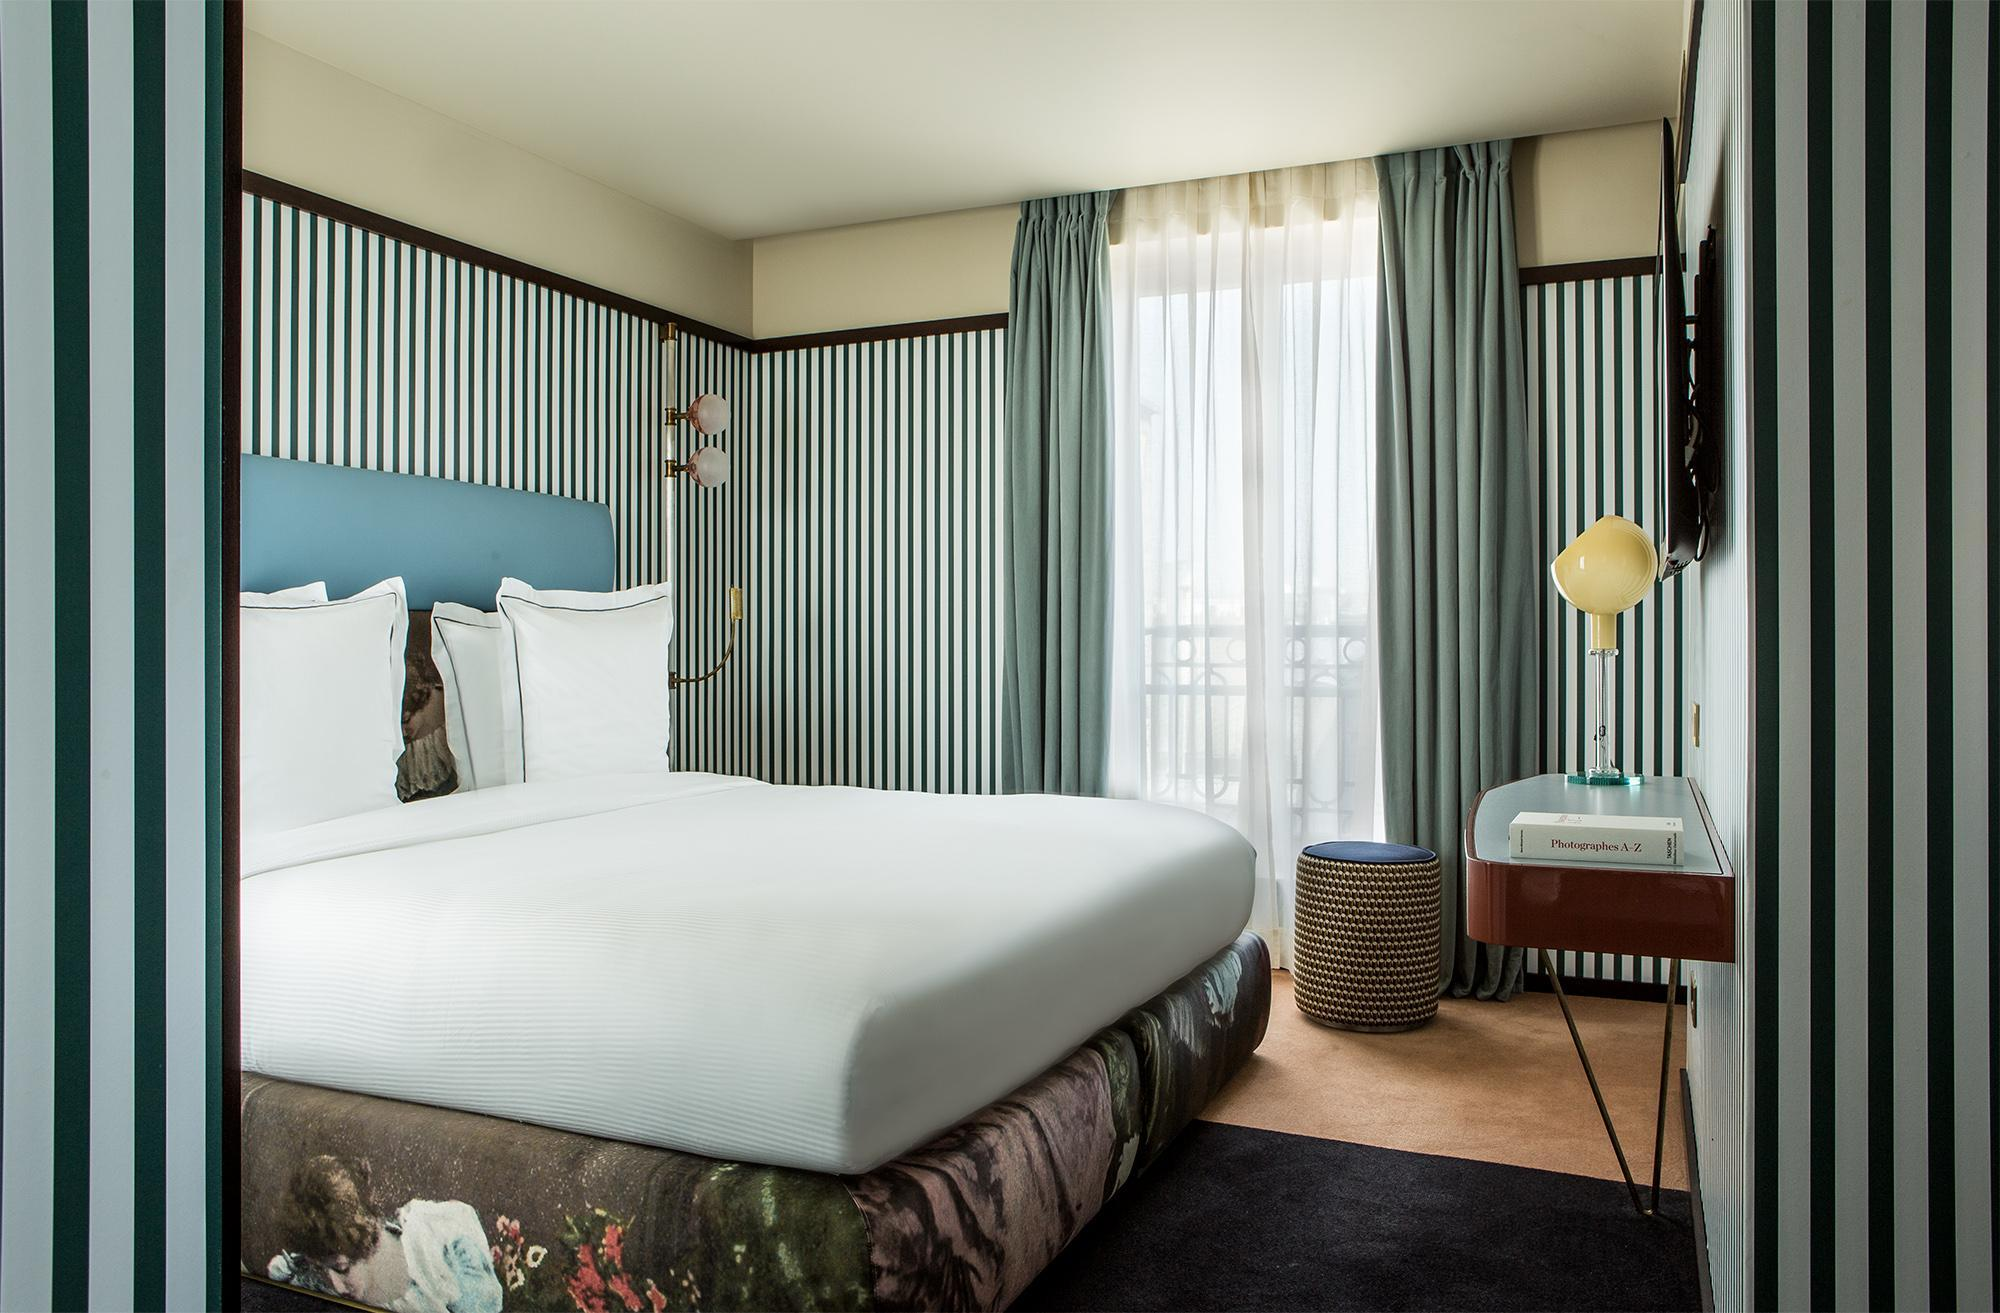 Hotel du Rond-Point des Champs Elysees